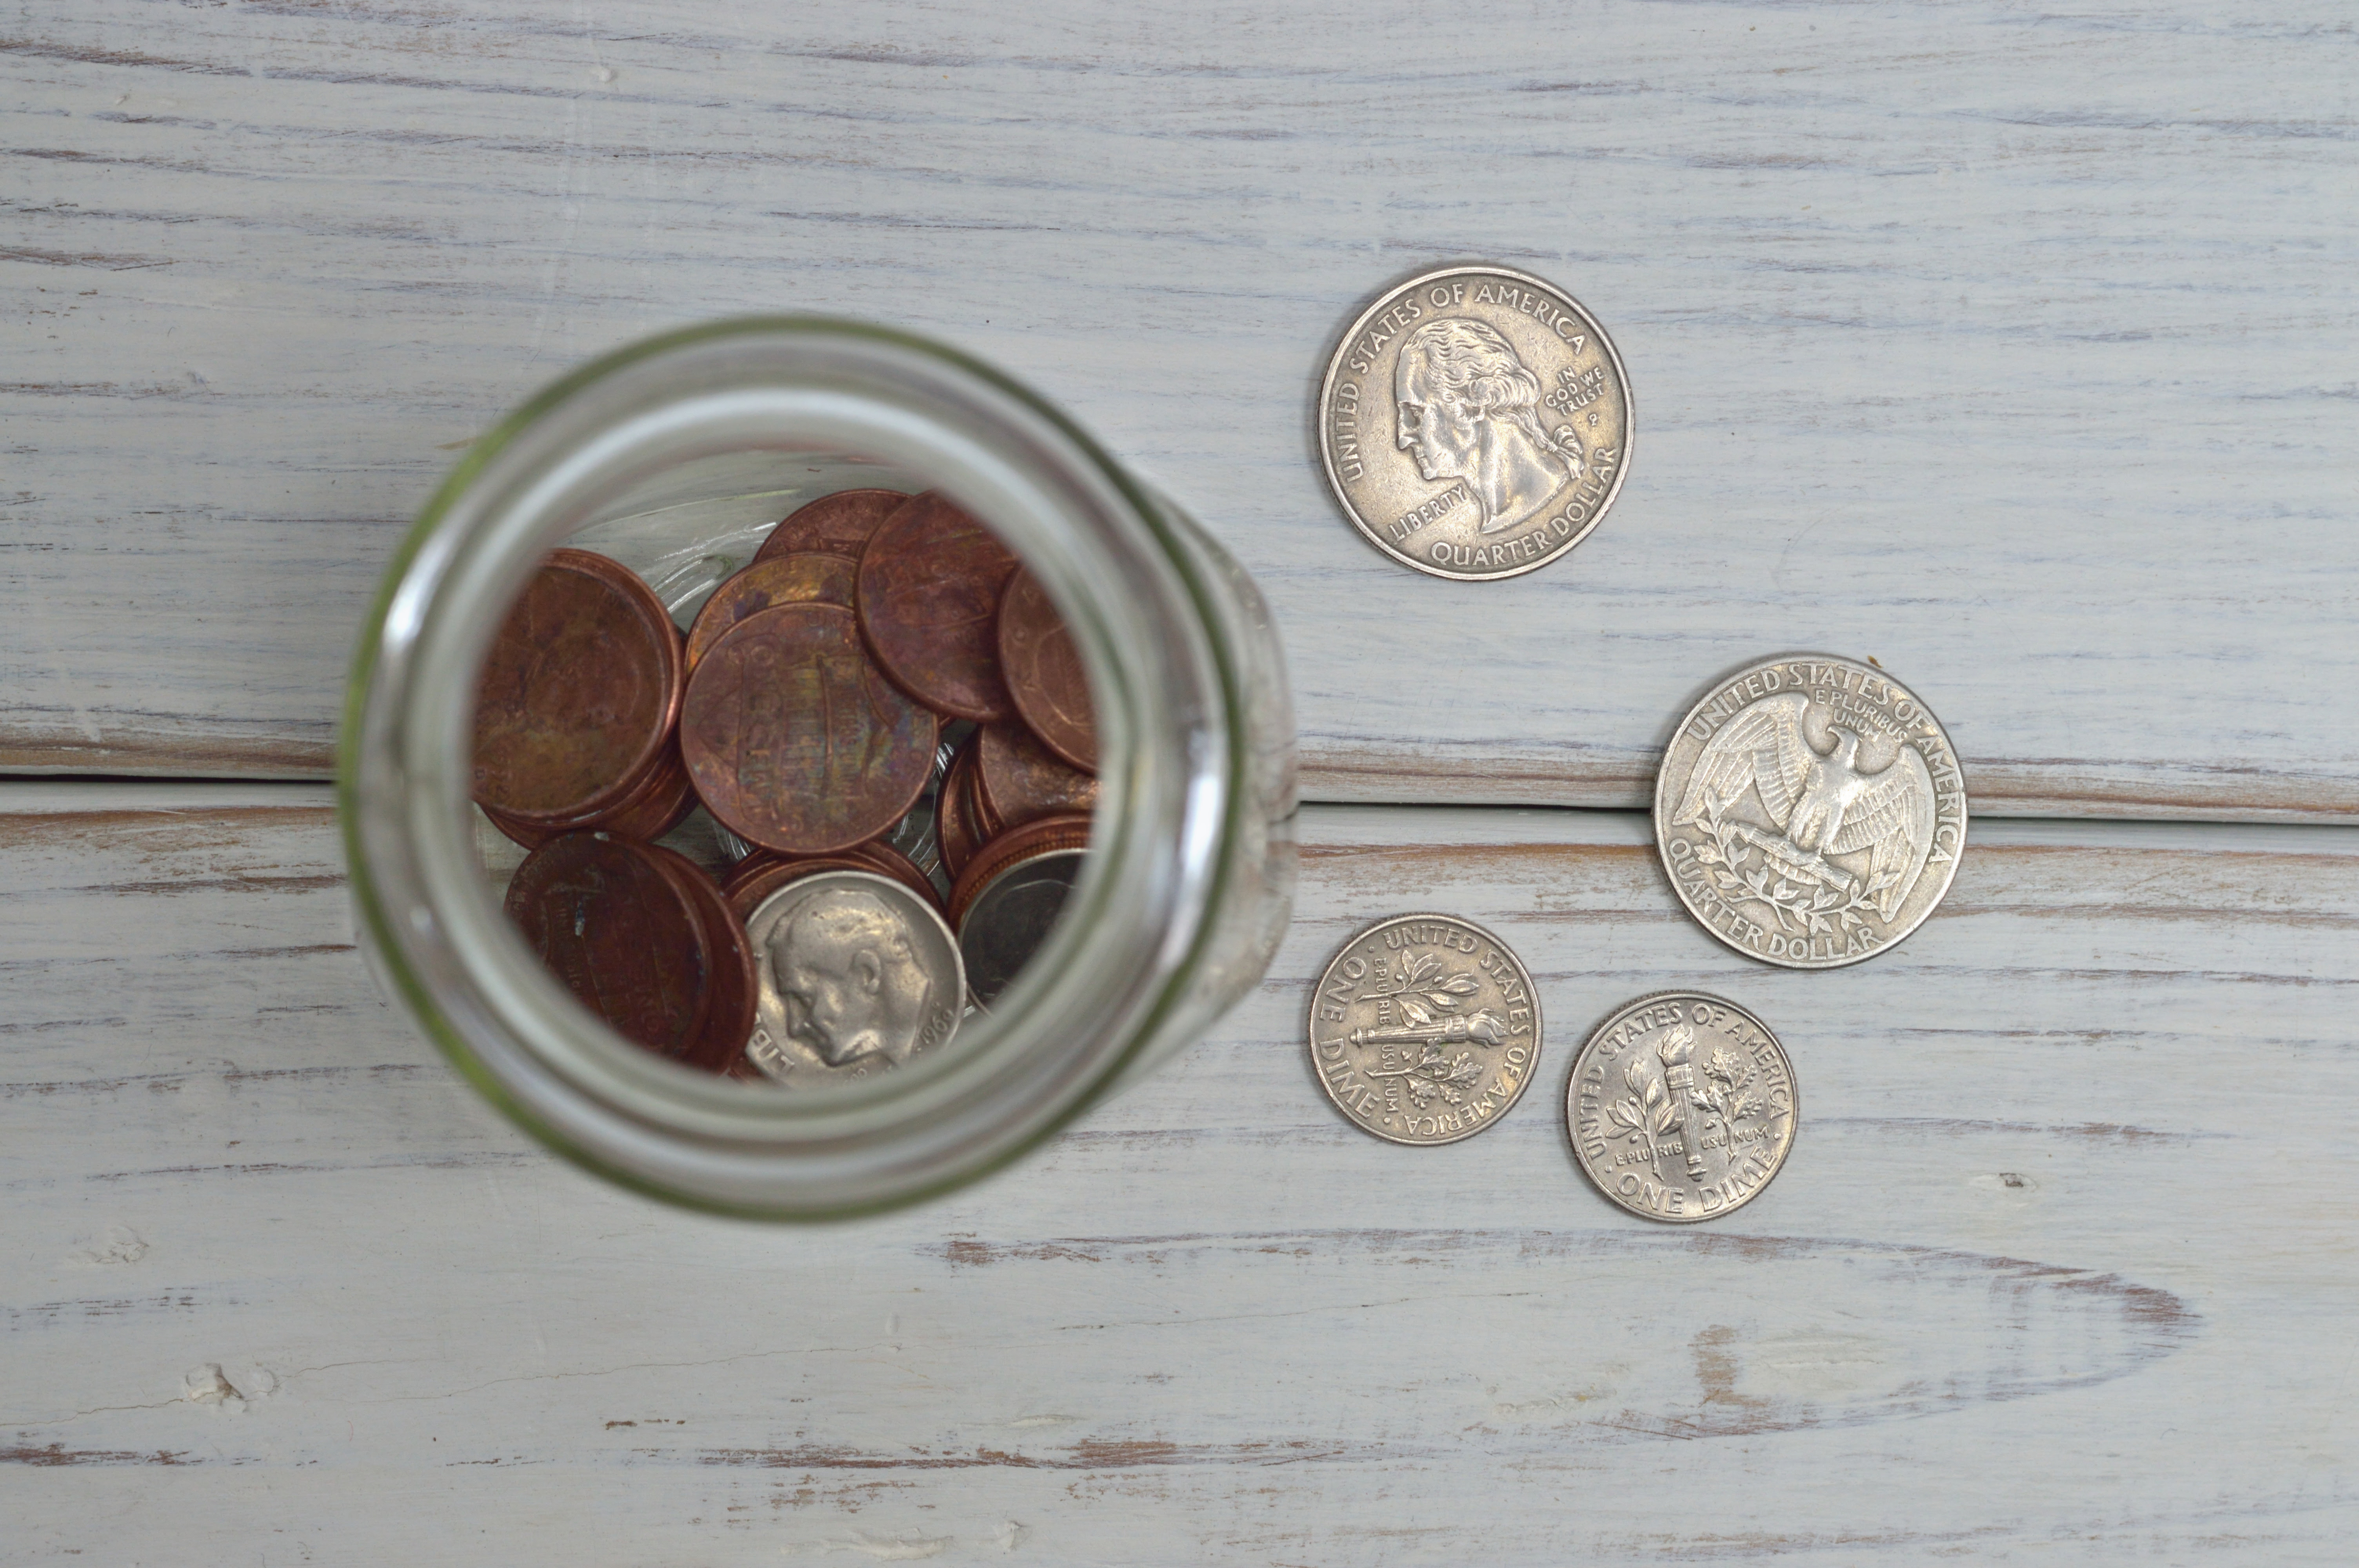 A jar of quarters and US pennies sit on a wooden table